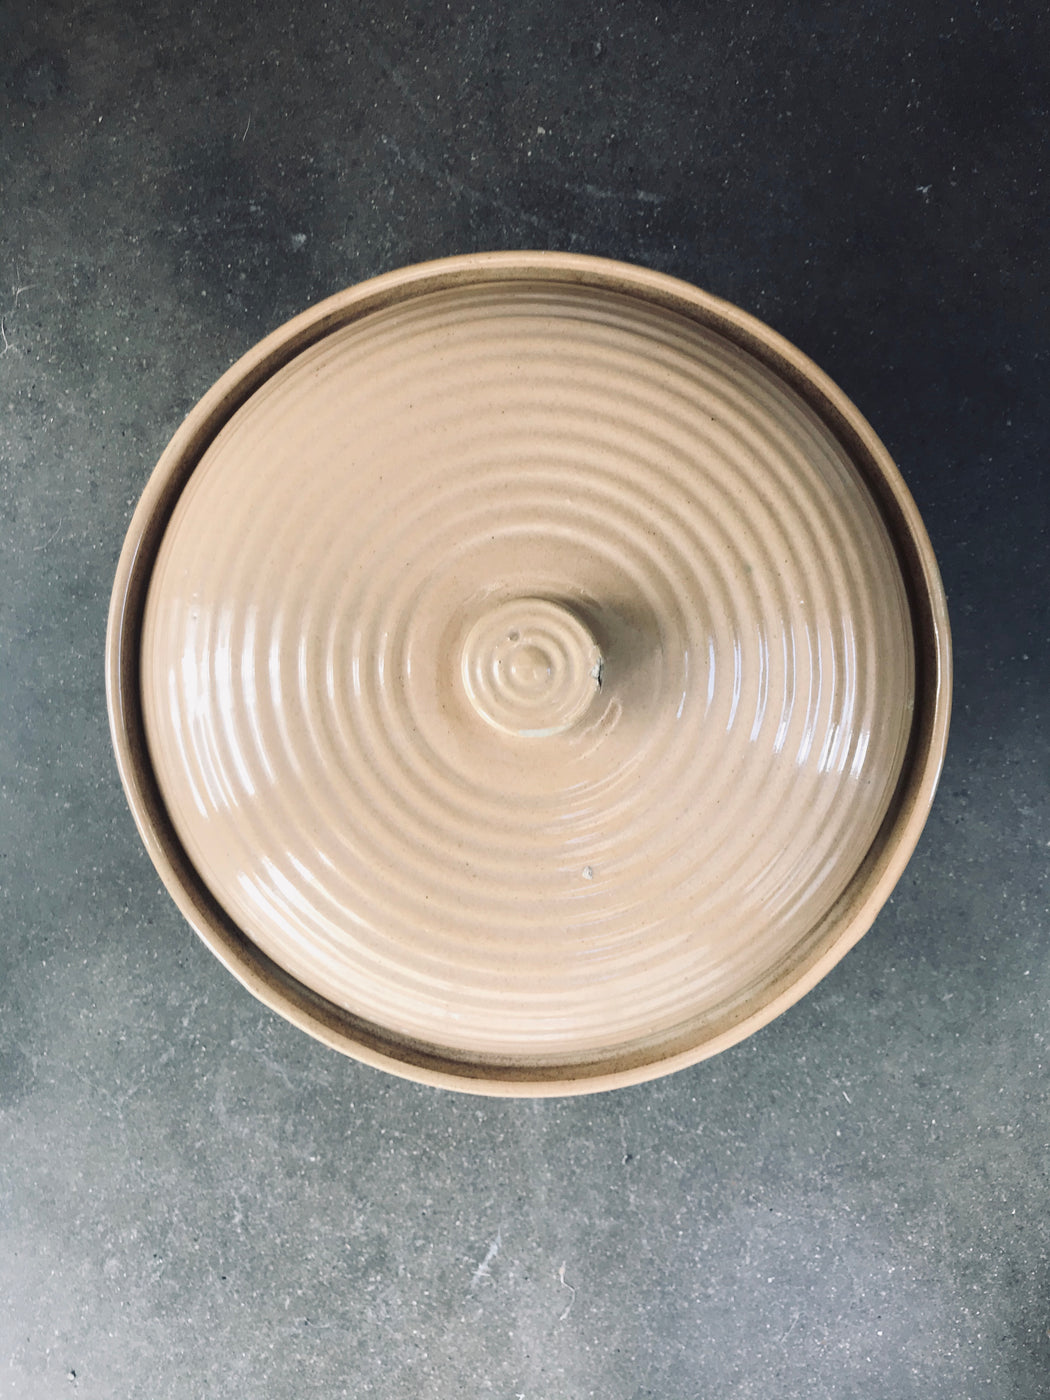 Tan Baking Bowl